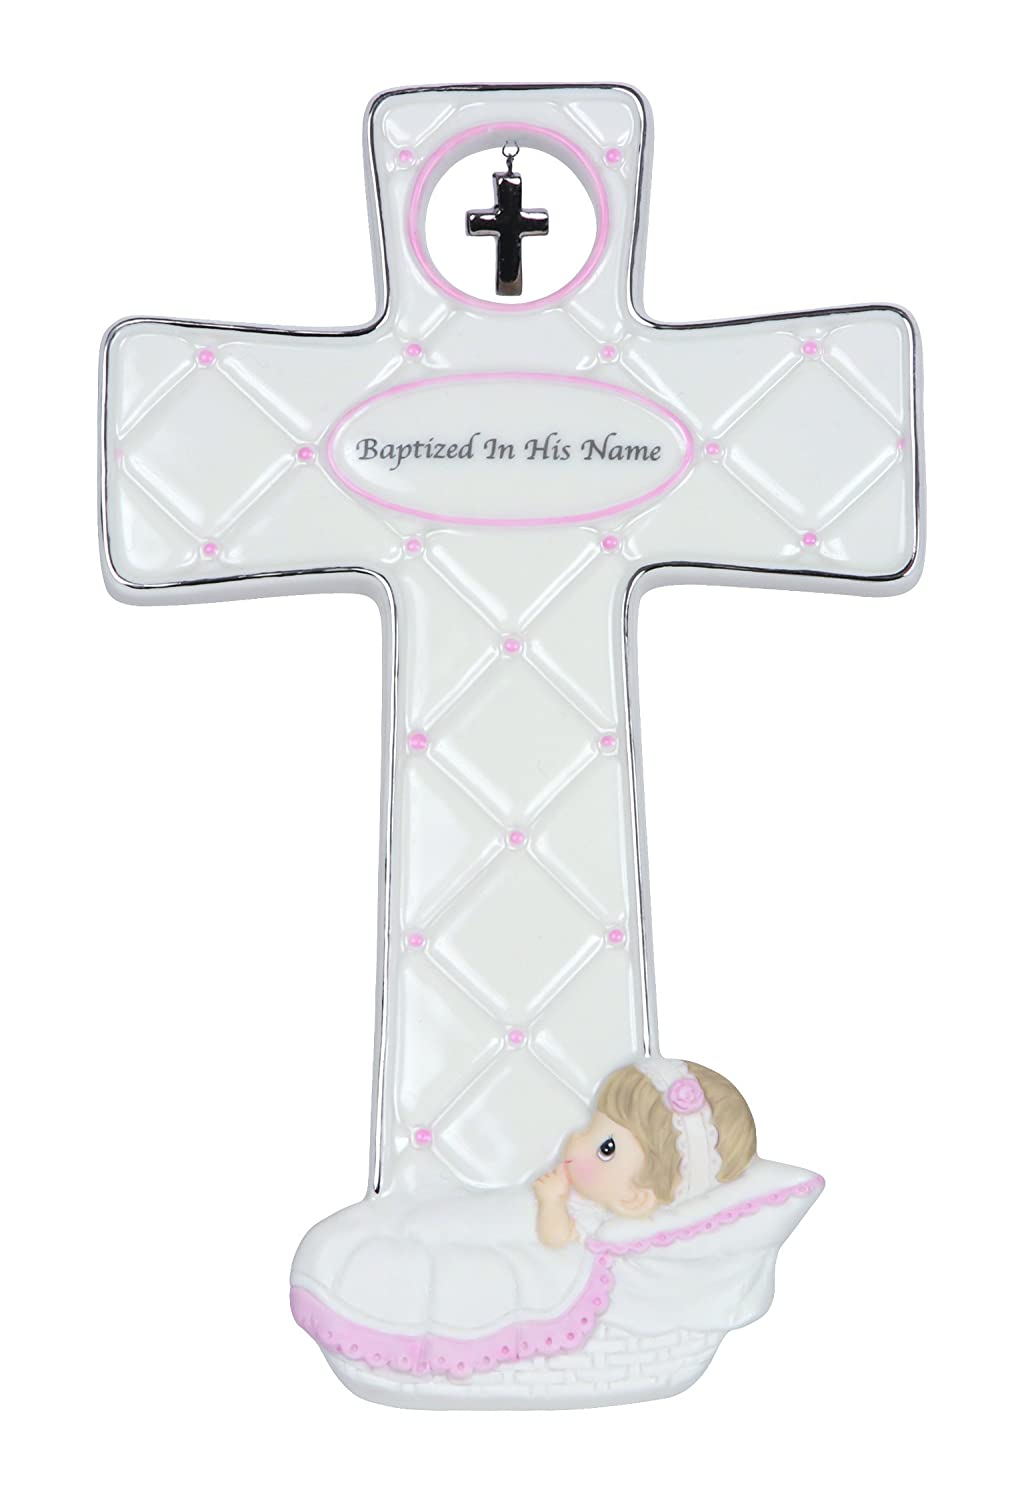 """/""""Baptized in His Name/"""" Boy Precious Moments 143403 Bisque Porcelain Cross Baptism Gifts"""